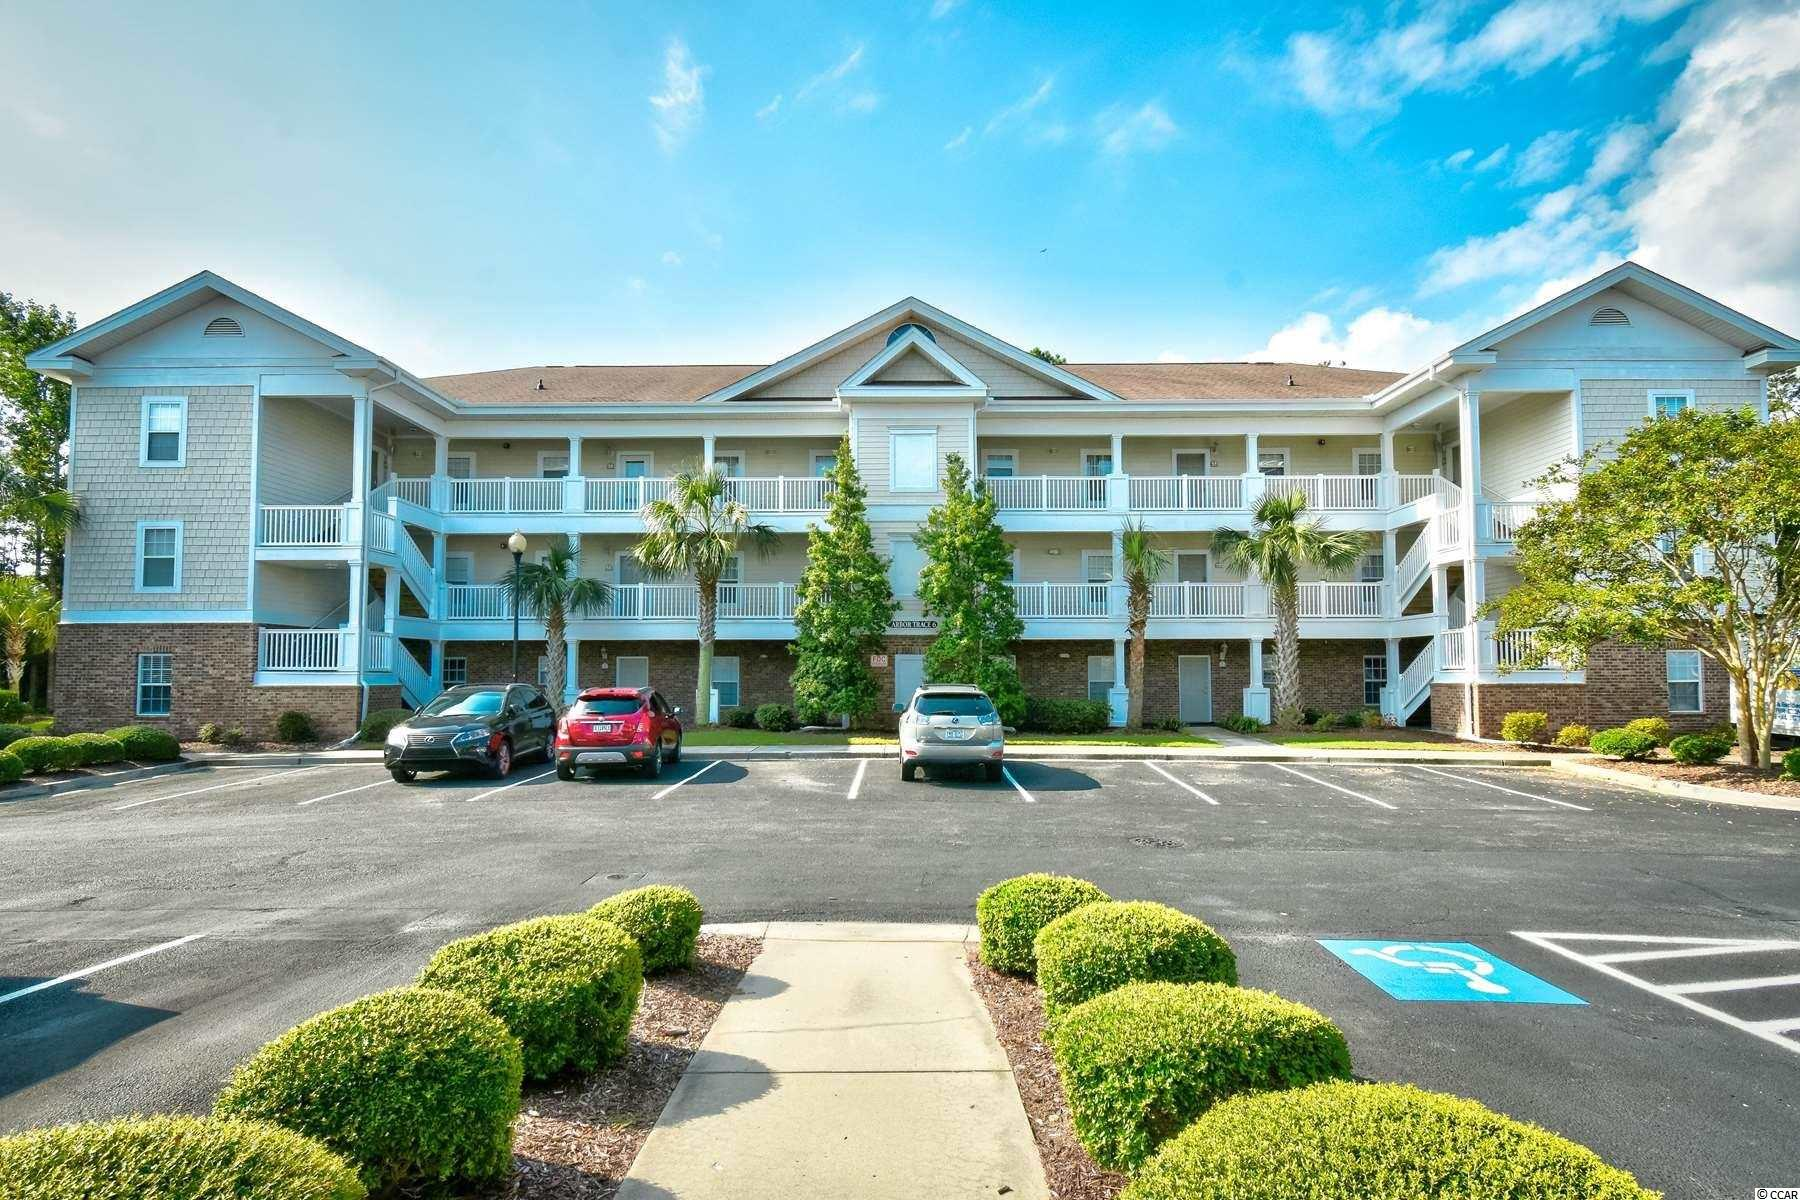 This beautiful top floor End unit 3 BR/ 2 BA Condo is located in the smallest and highly sought after golf villa community of Arbor Trace located within Barefoot Resort. Kitchen countertops have been replaced, both bathroom countertops have been upgraded to granite, New Hvac and hot water heater in July of 2018 as well as recently replaced washer and dryer. Every amenity you could ever ask for is just a short golf cart ride away starting with 4 Championship Golf Courses (Dye, Fazio, Norman and Love), two outdoor swimming pools, and a soon to be finished beach cabana on the Atlantic Ocean with private parking for owners. Conveniently located just a mile from the popular Barefoot Landing, which features two concert and entertainment venues, lots of shopping and a variety of great restaurants with beautiful intracoastal views. You do not want to miss this opportunity, Contact your agent today for more details.